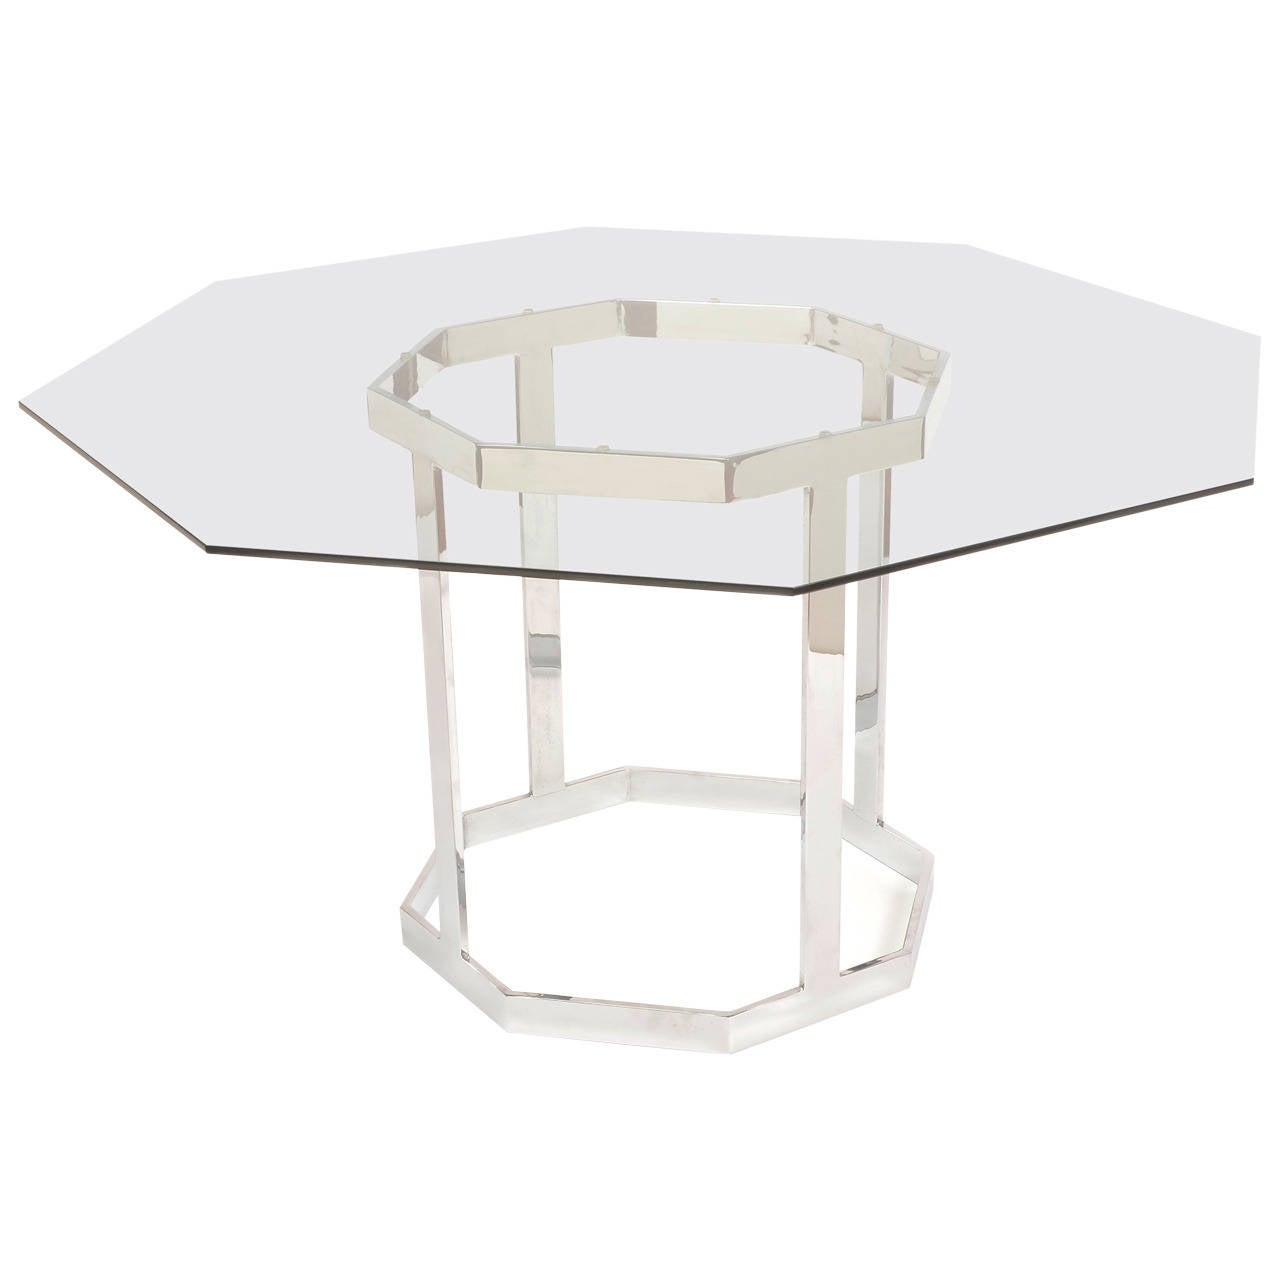 Milo Baughman Style Chrome Octagon Dining Table At 1stdibs